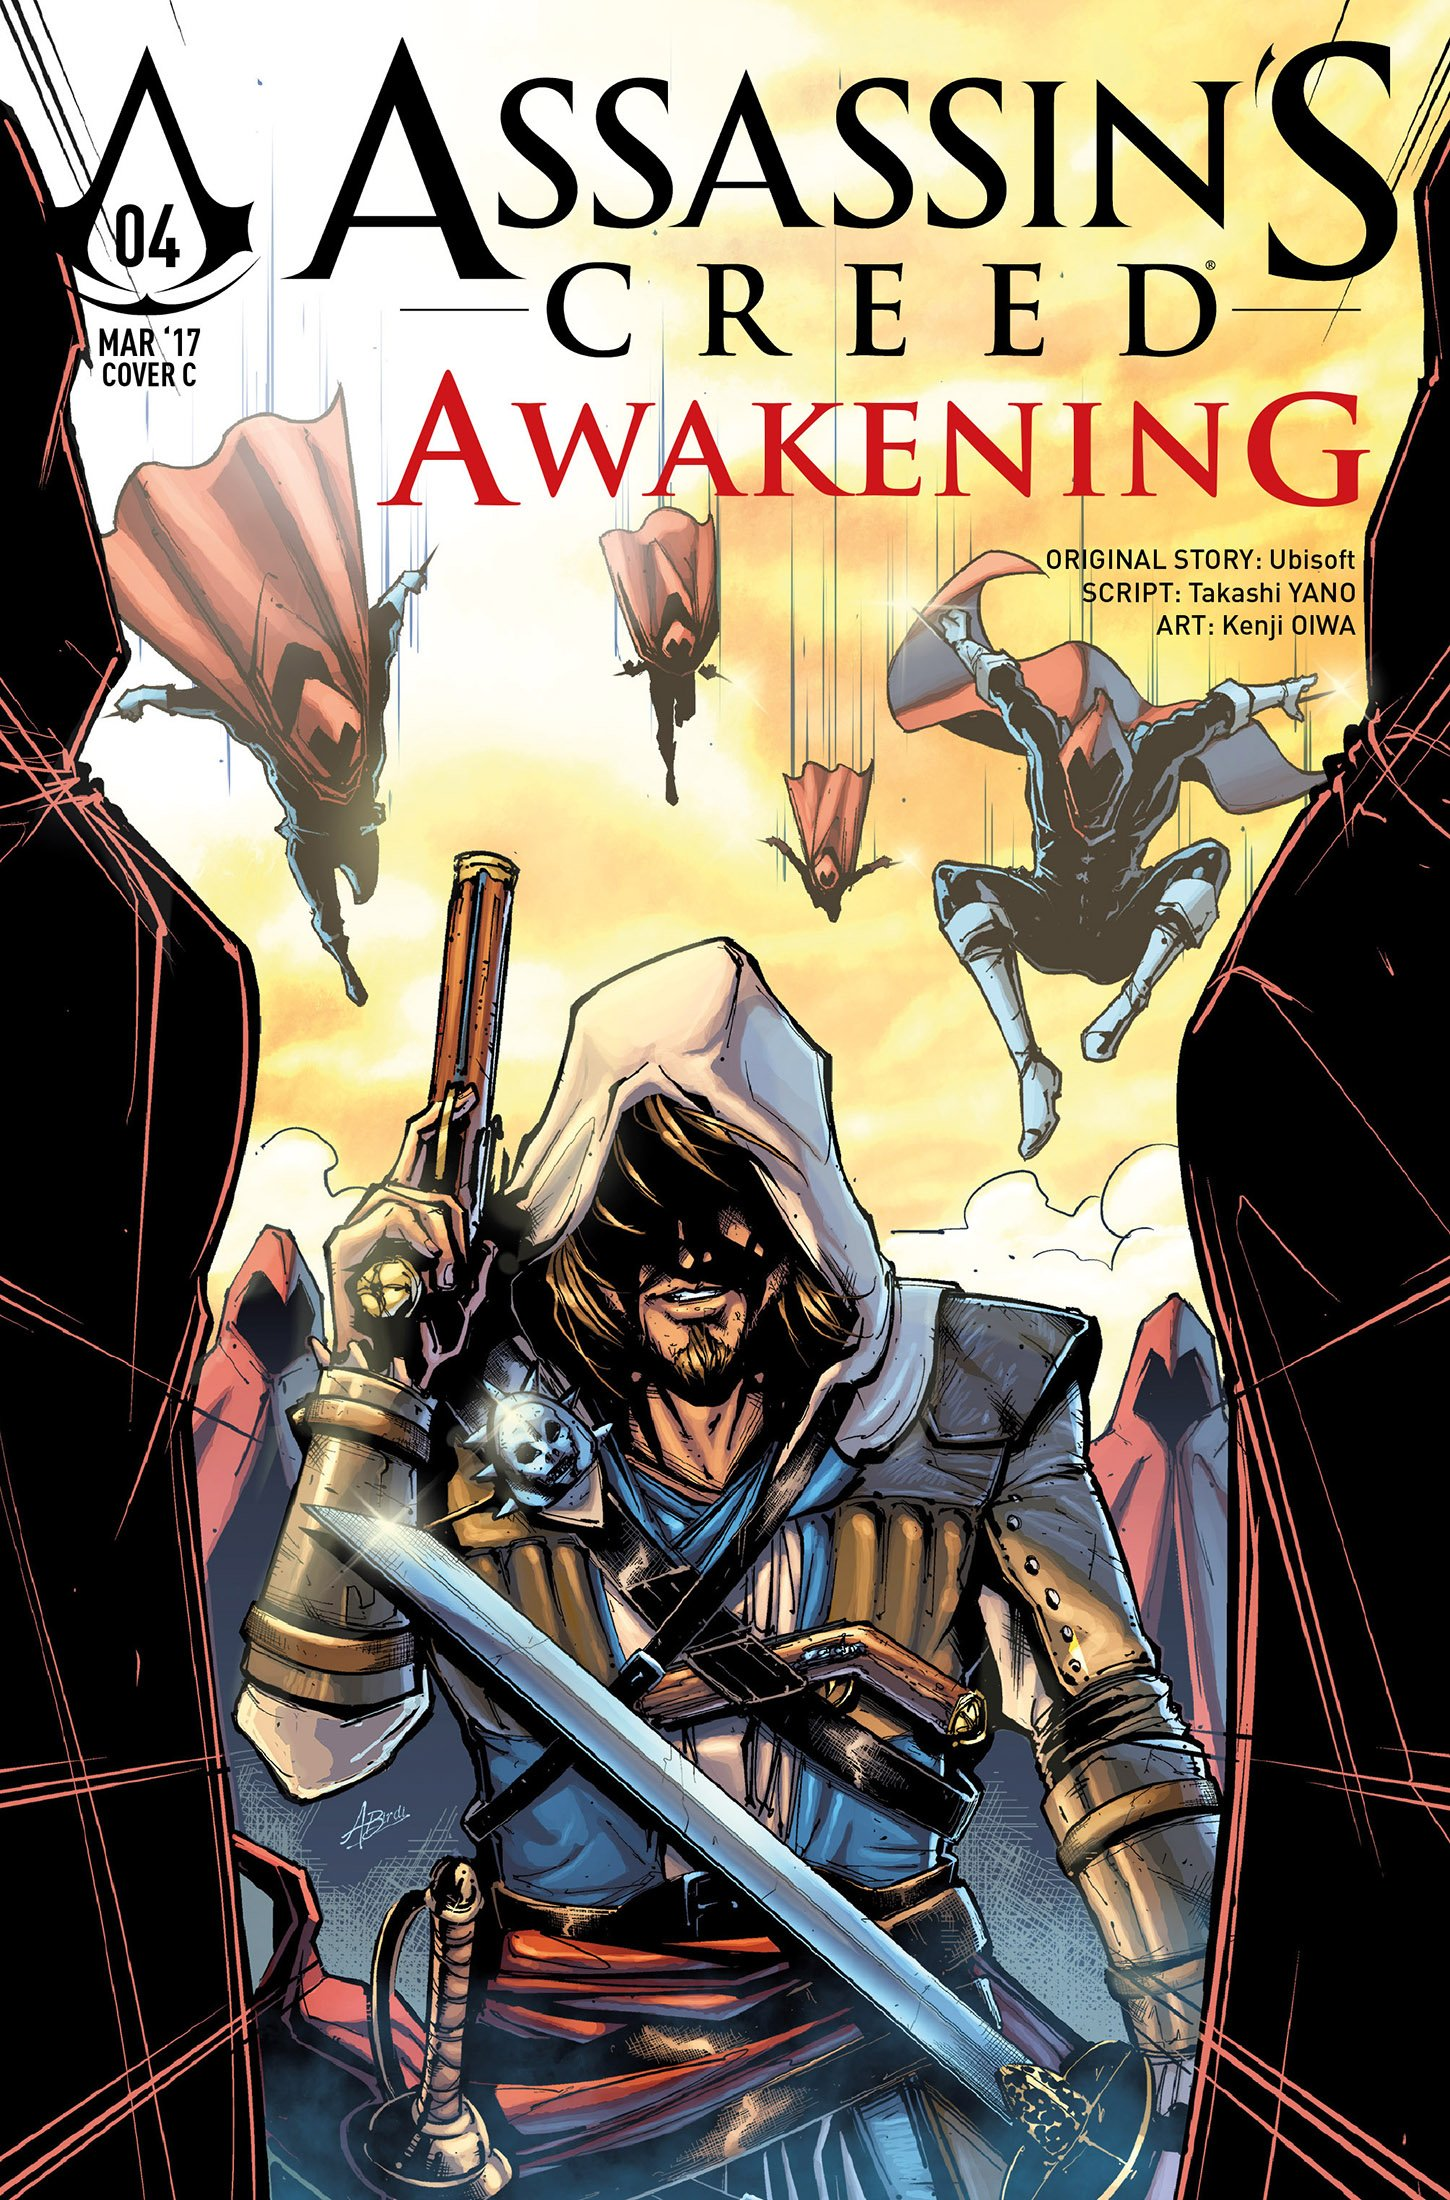 Assassin's Creed - Awakening 04 (March 2017) (cover c)